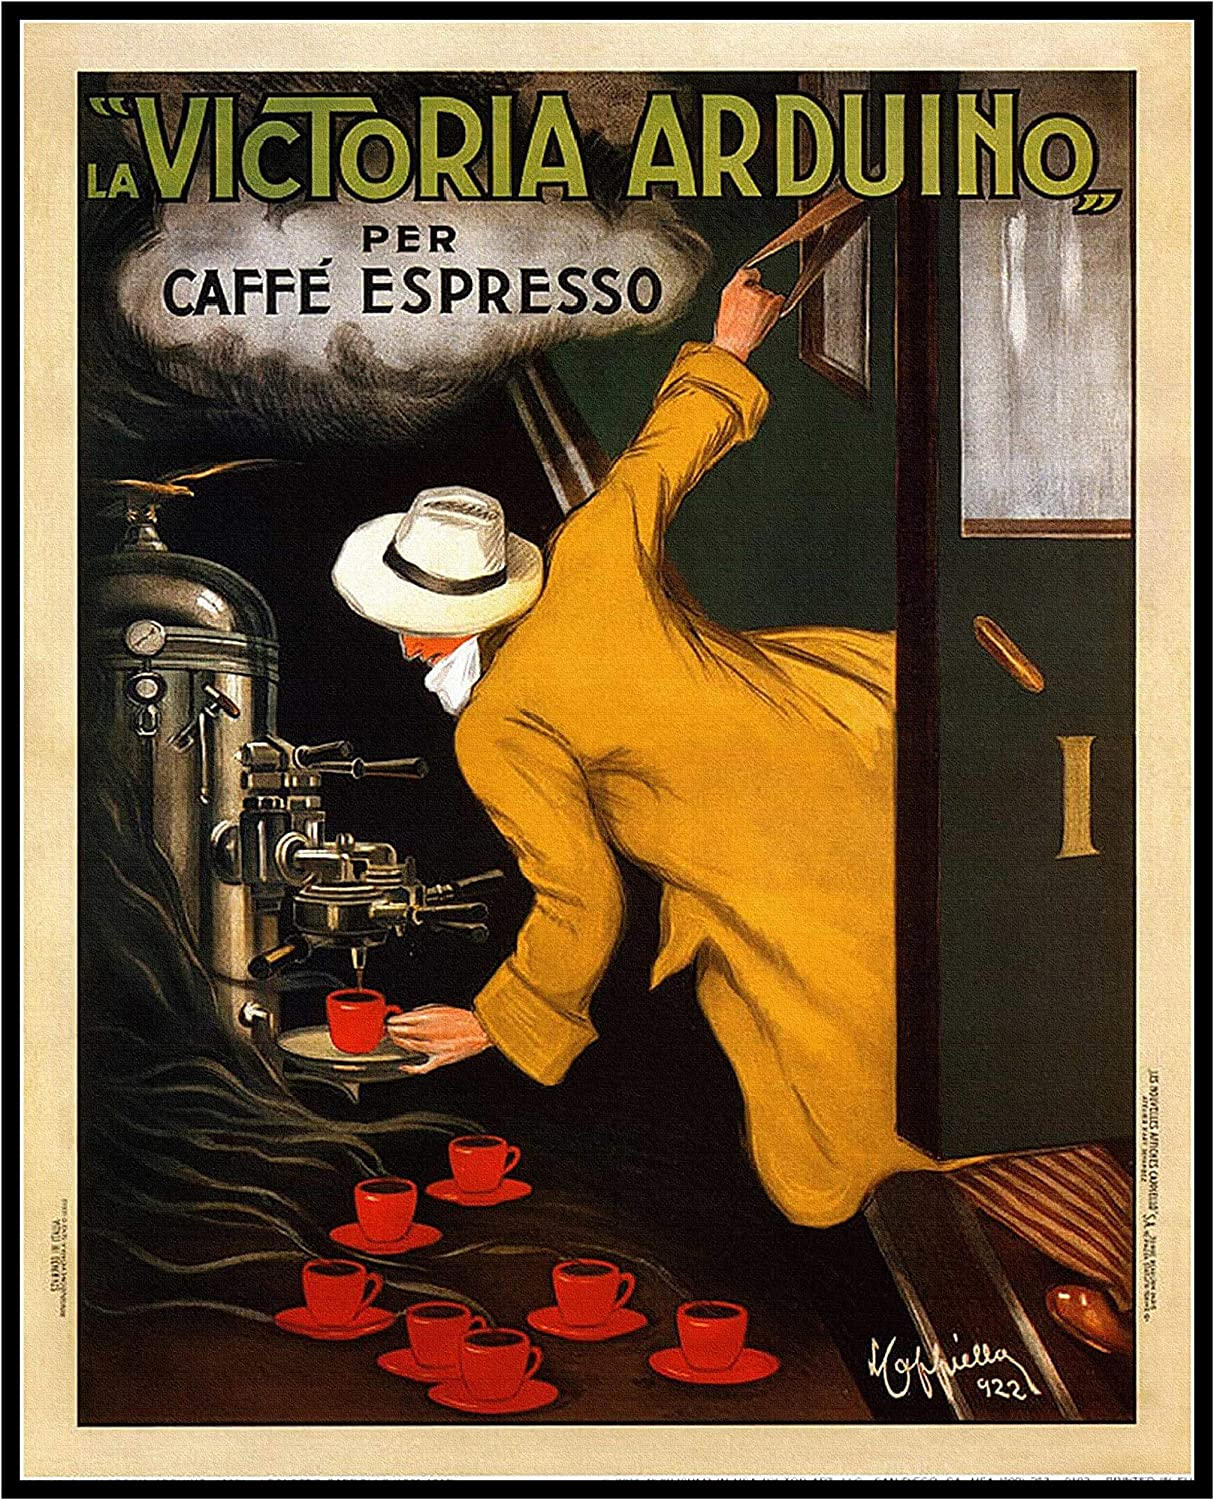 8 x 10 Photo Print Victoria Arduino 1922 Vintage Coffee Food Drink Poster Vintage Old Advertising Campaign Ads